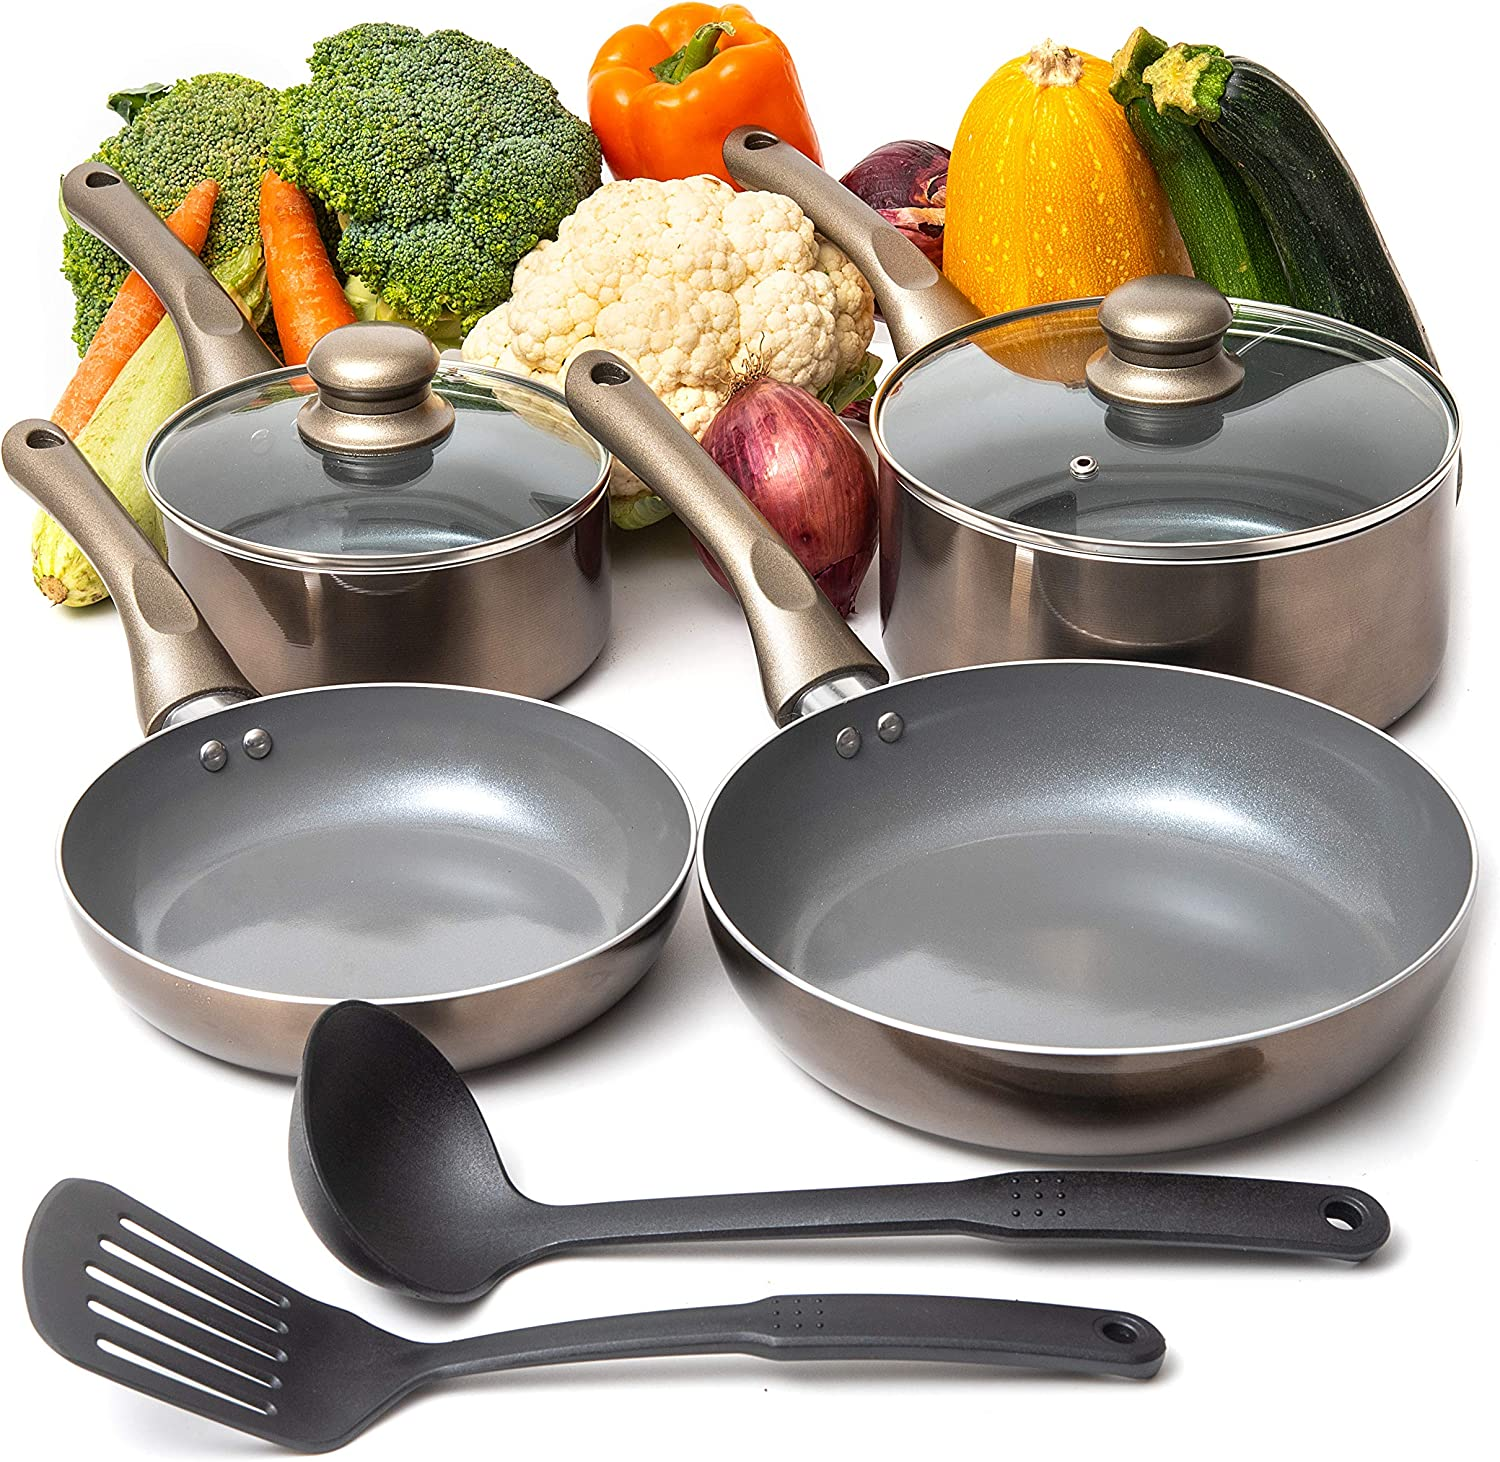 8PCS Nonstick Cookware Set, Aluminum Pots and Pans with Cooking Utensils, Induction Cookware, Oven Safe, Pots and Pans Set with Glass Lid by Moss & Ston